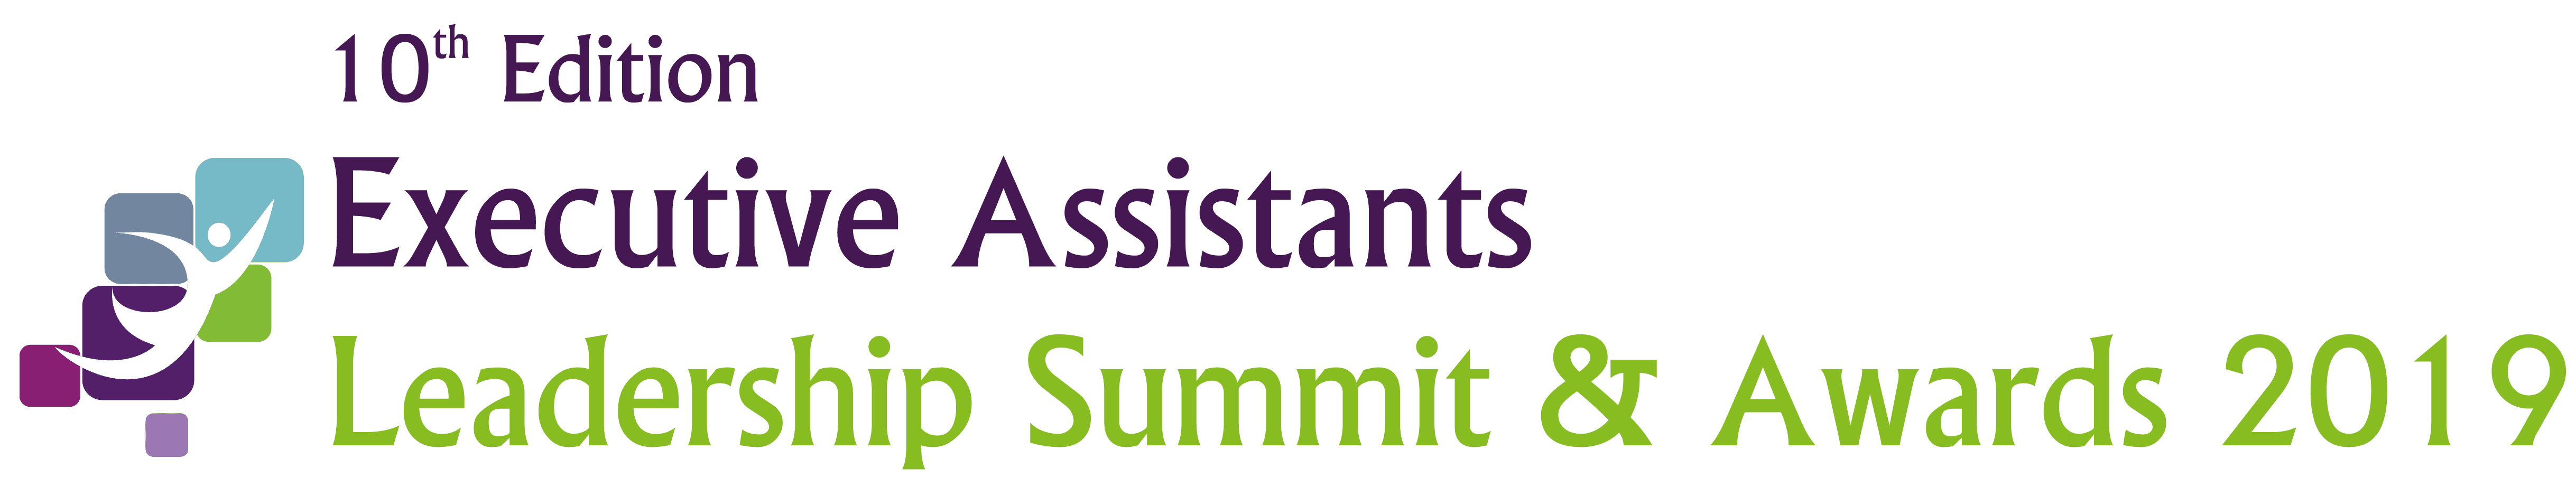 10th Edition Executive Assistant Leadership Summit & Awards 2019